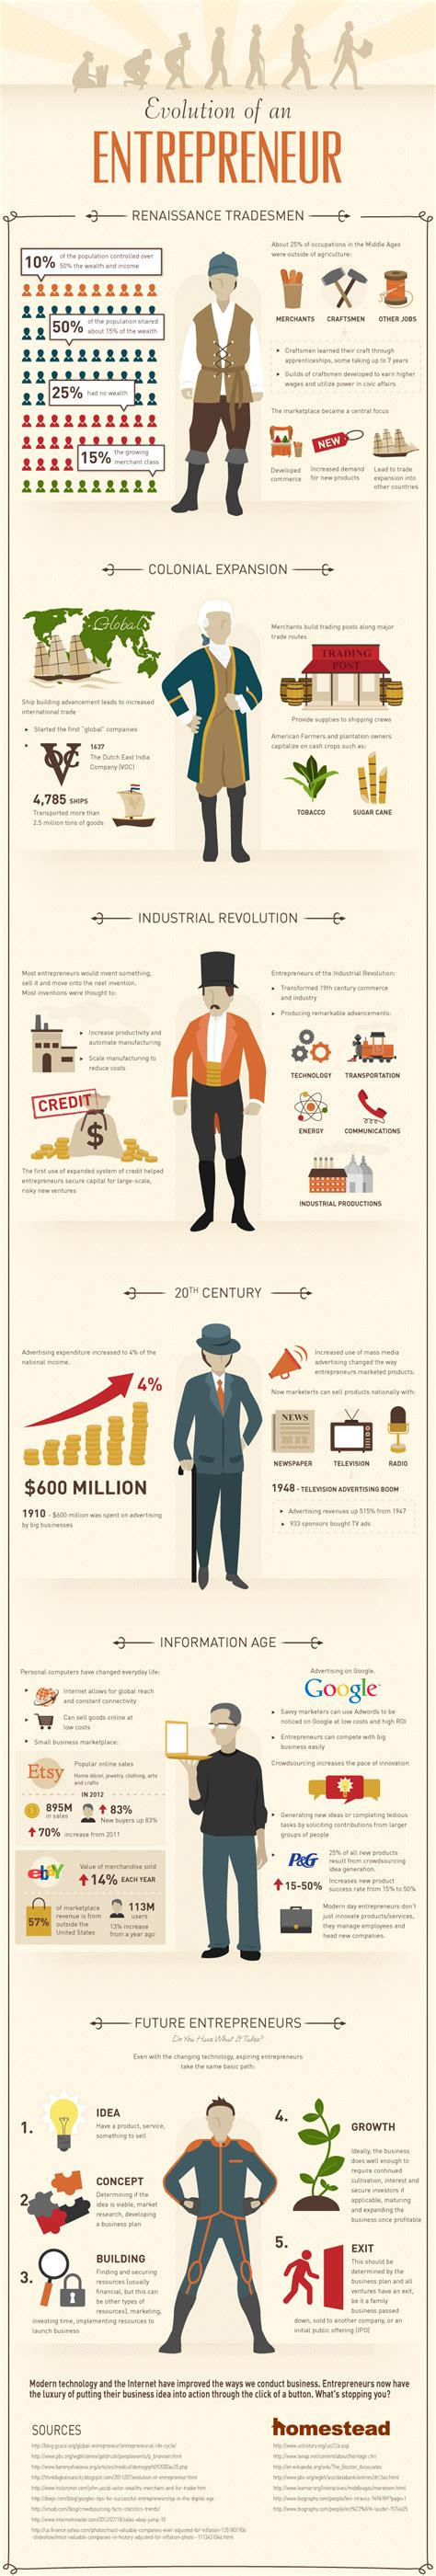 history timeline of the entrepreneur and small business